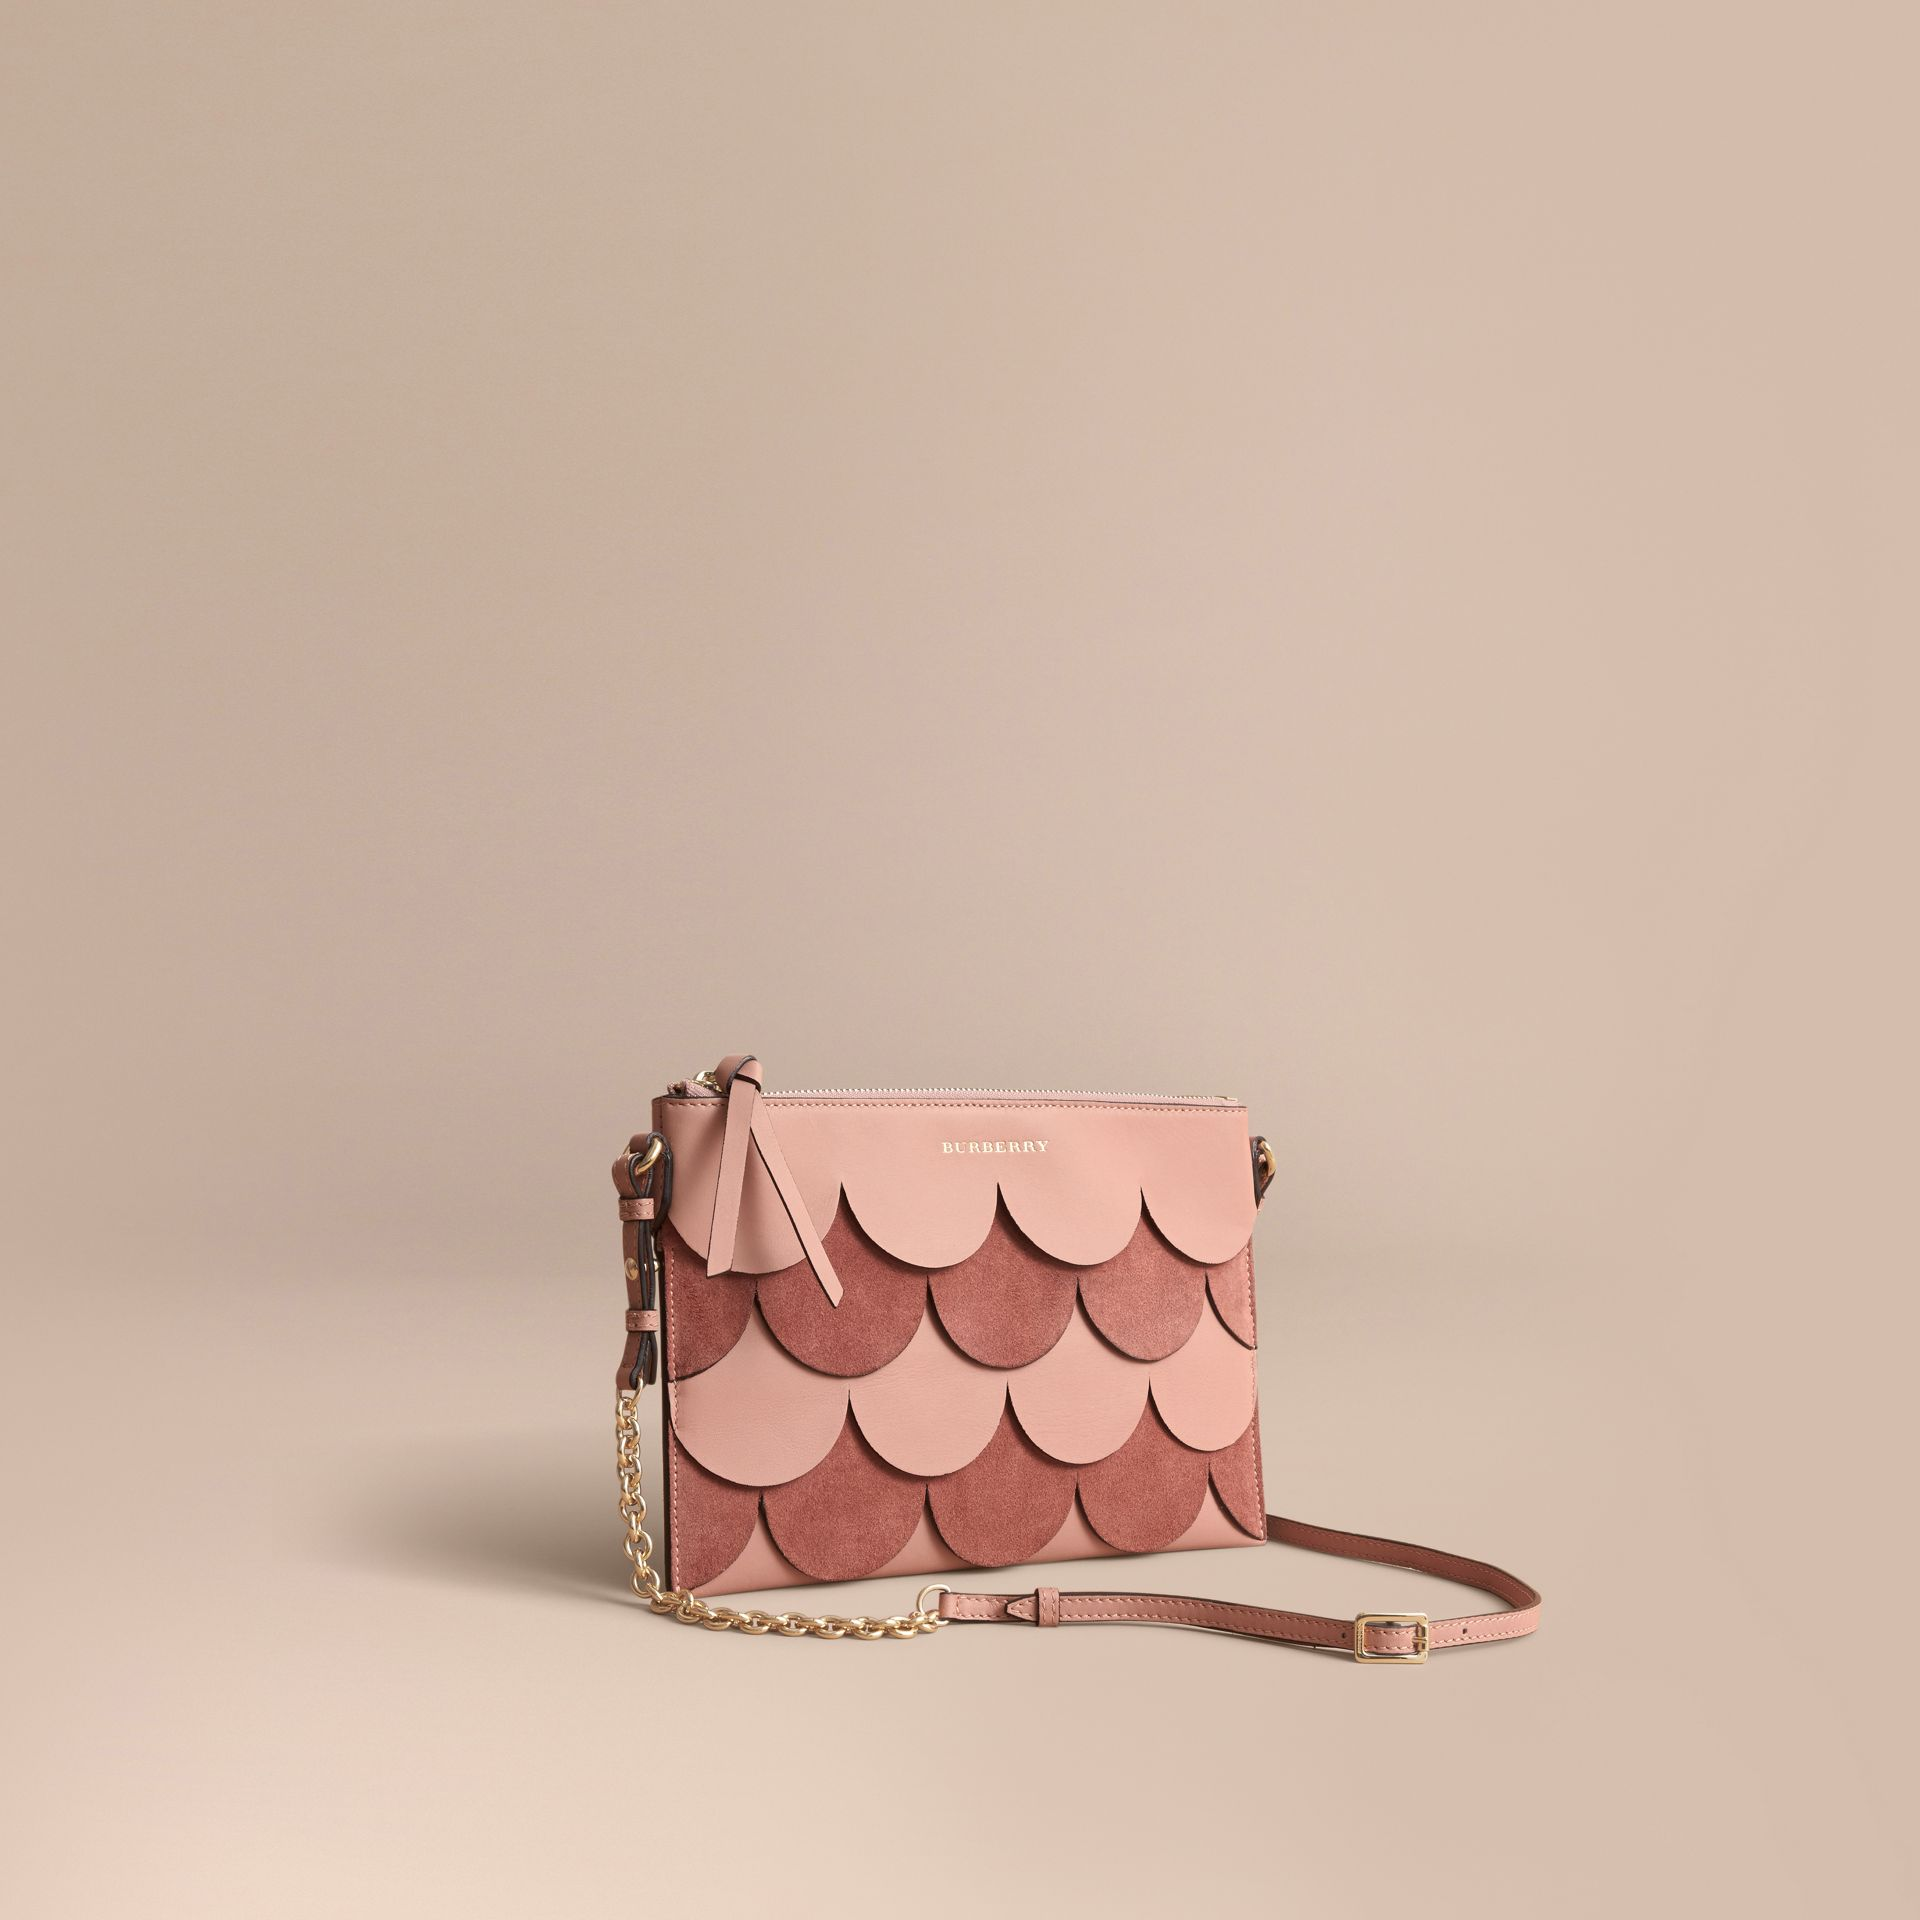 Two-tone Scalloped Leather and Suede Clutch Bag in Ash Rose - Women | Burberry Australia - gallery image 1